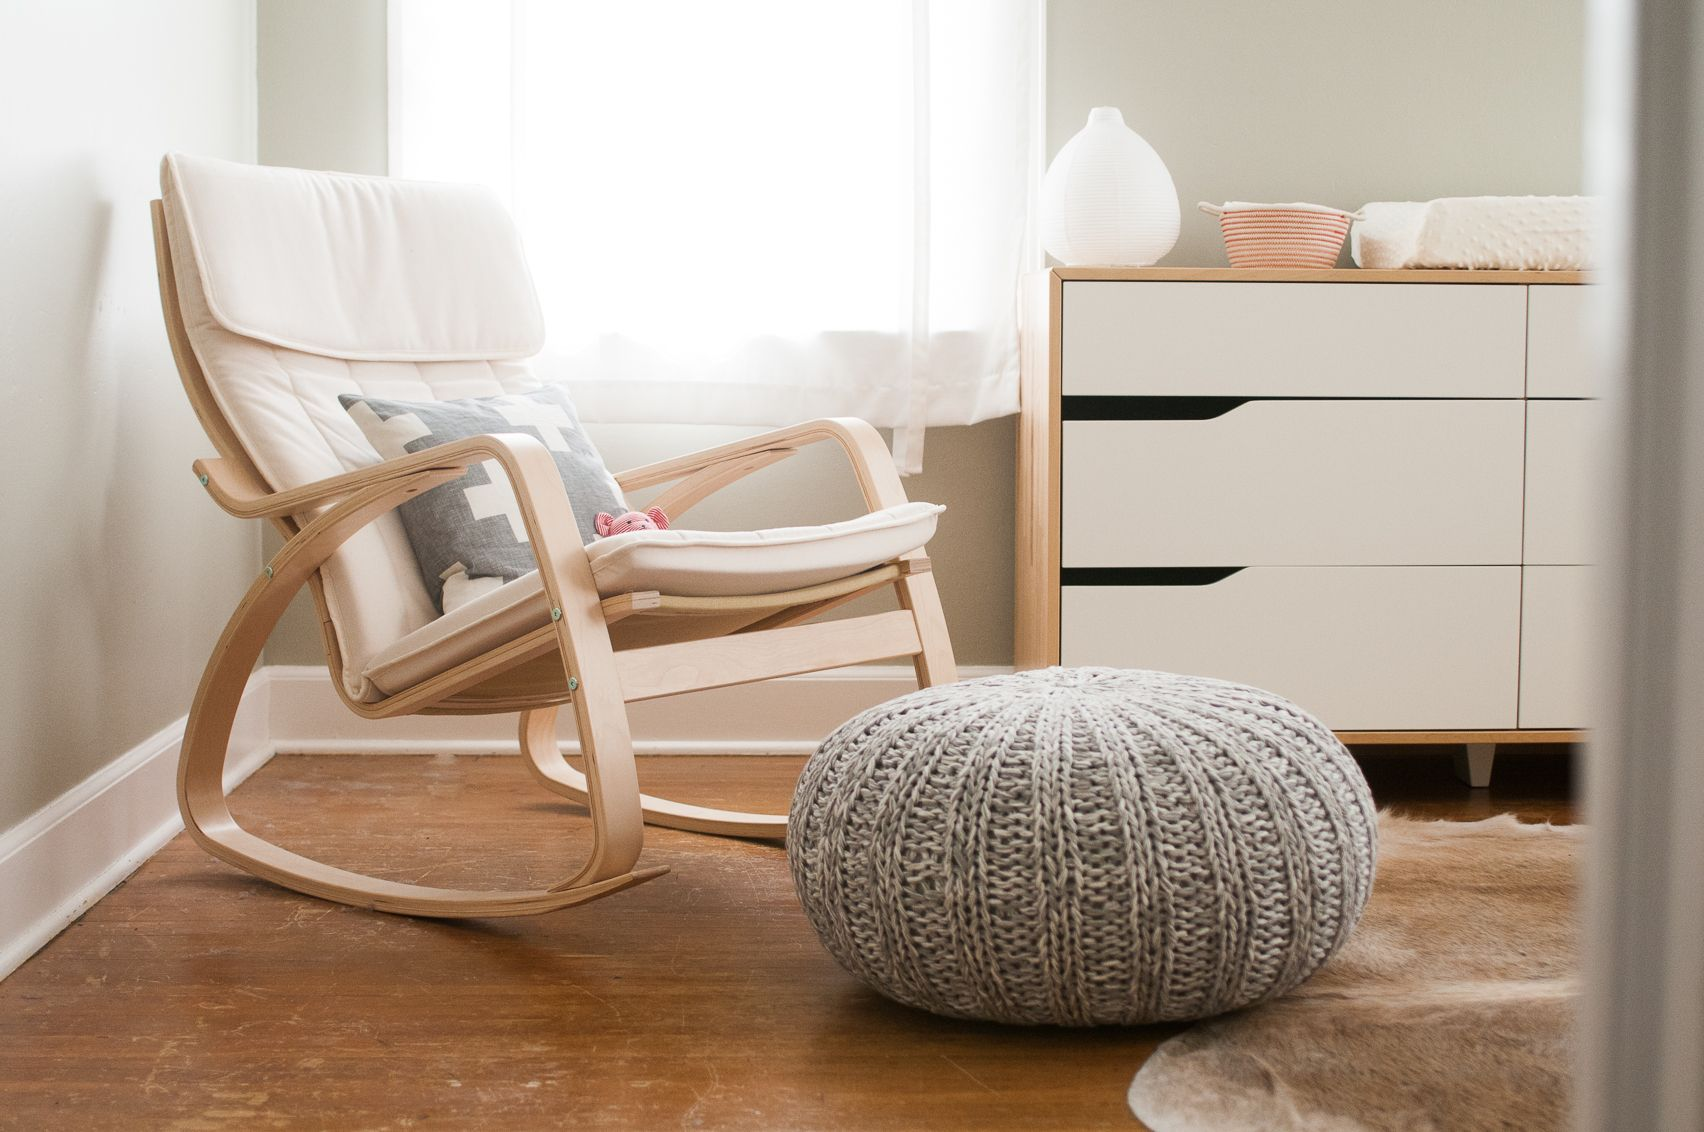 ikea poang rocking chair for gray and white nursery colins room